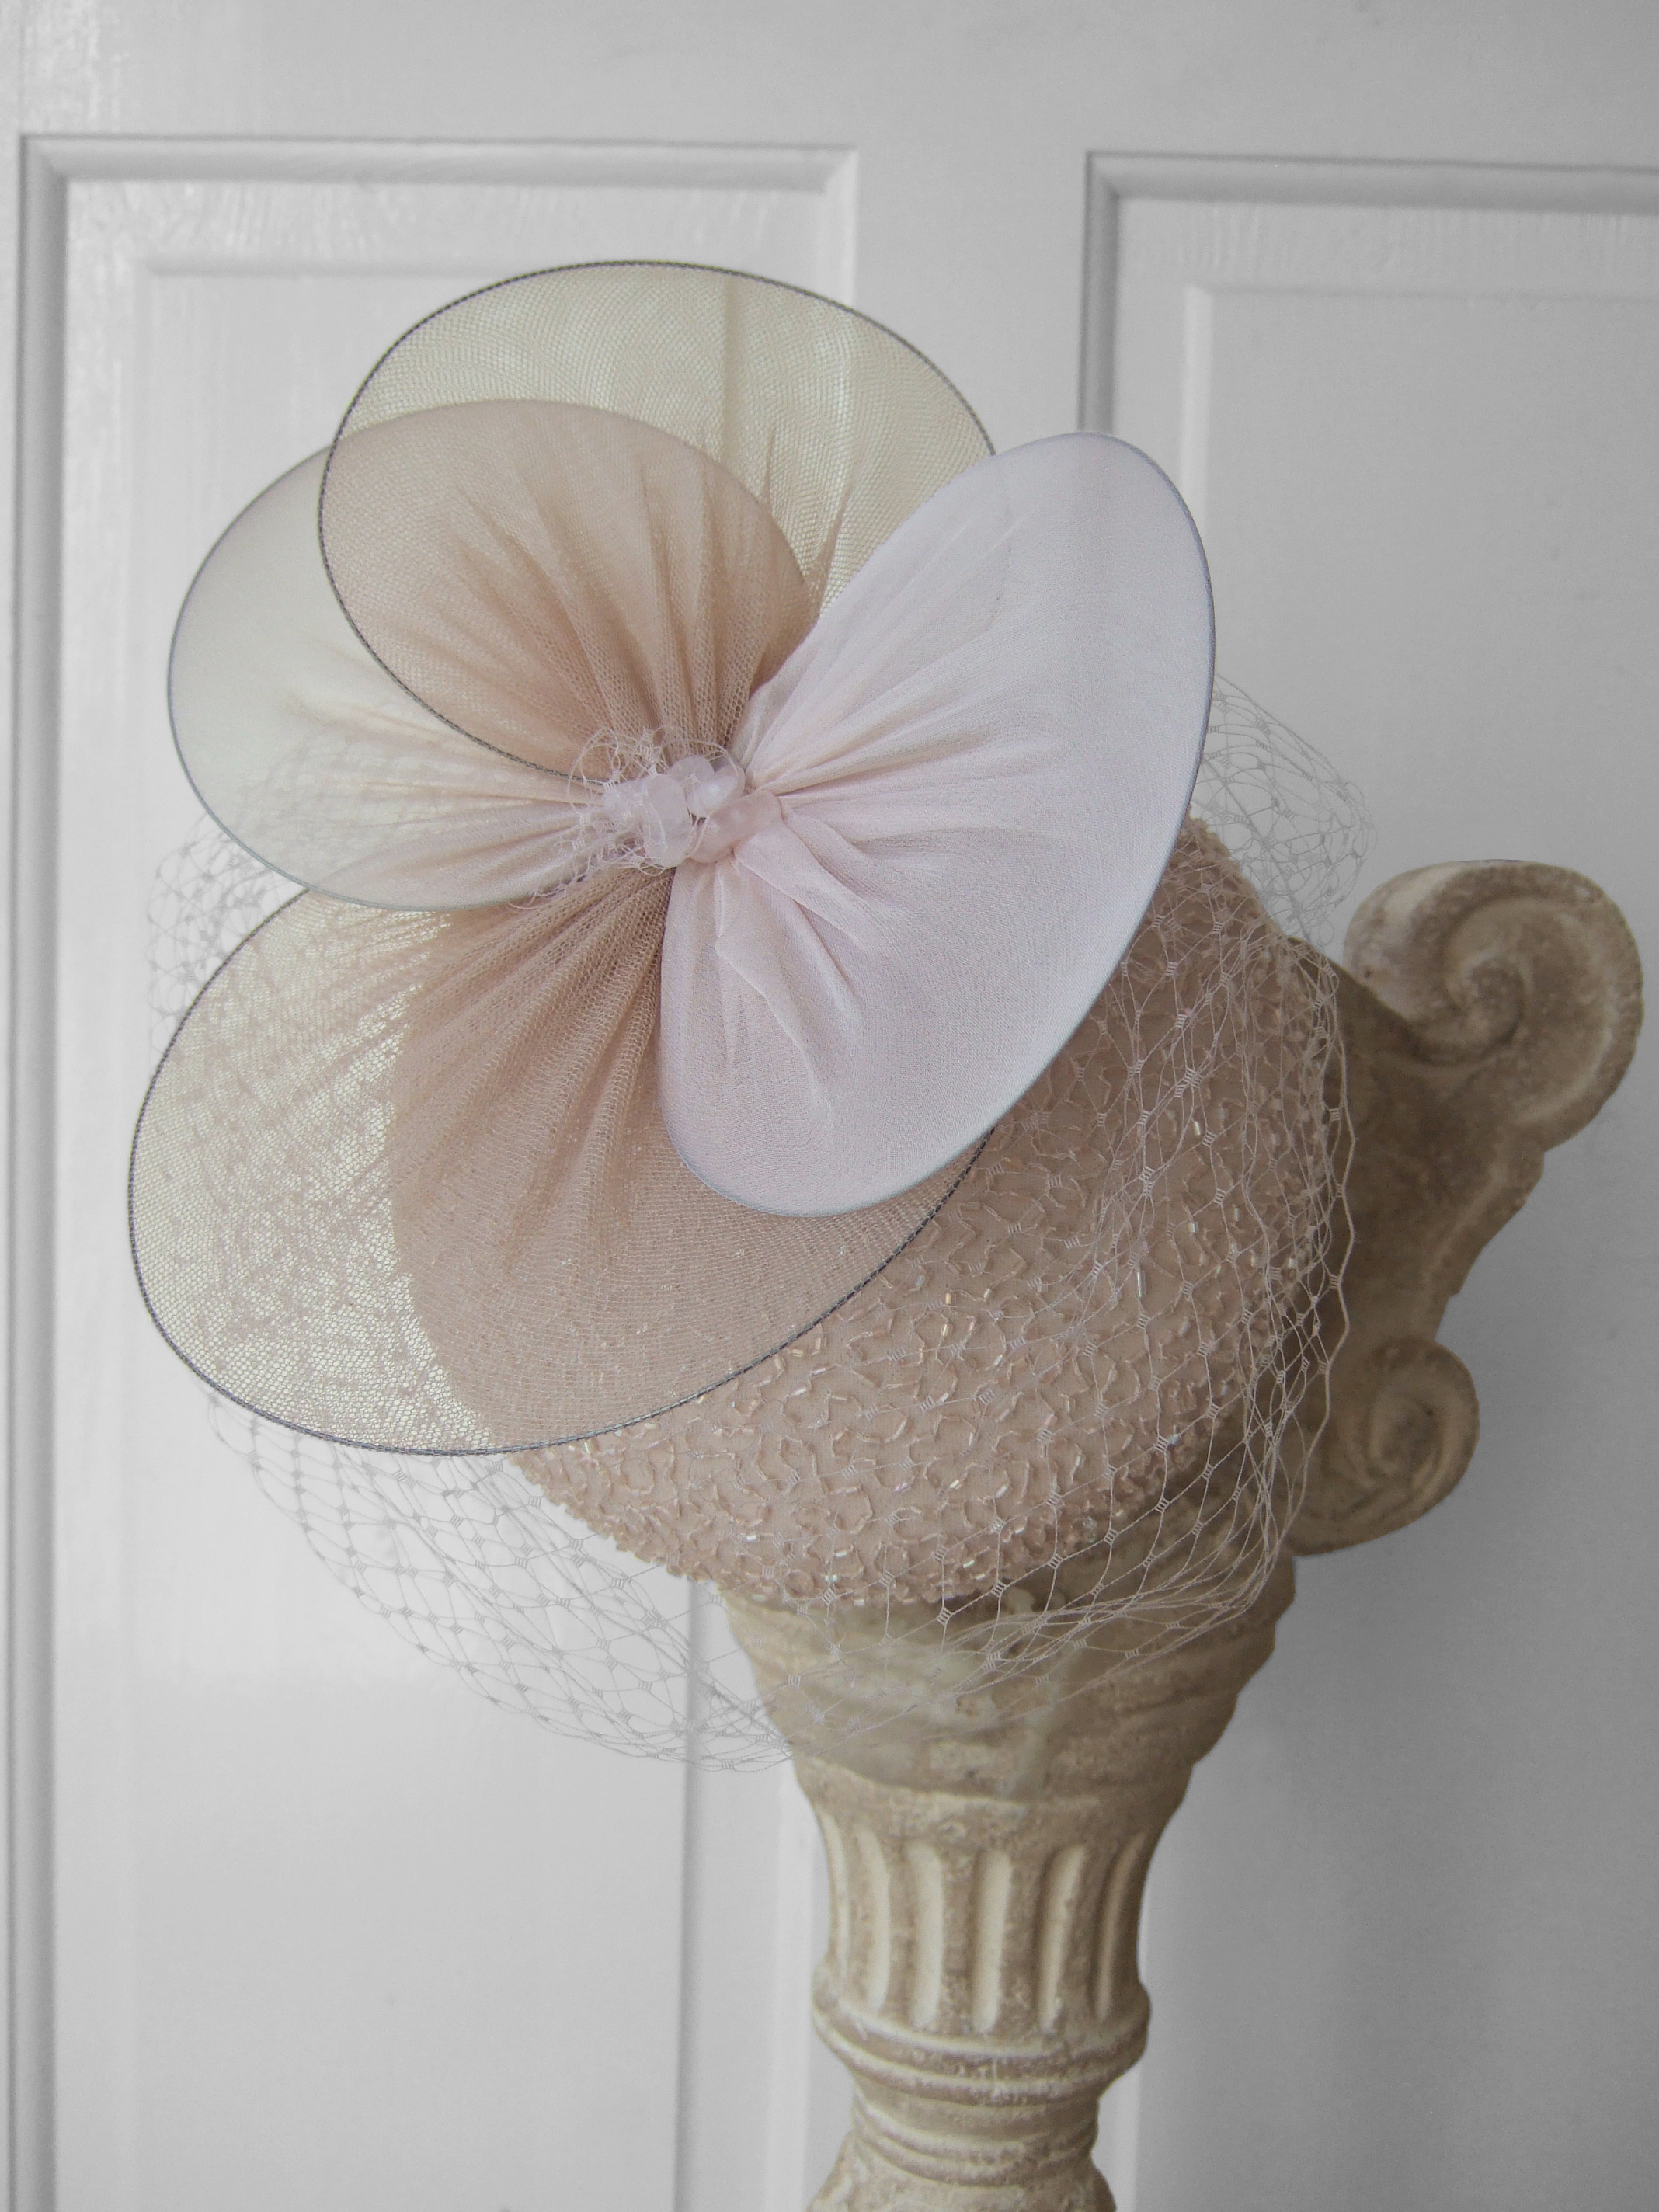 Jane Taylor Catherine Headpiece for Hire. As worn by Kate Meddleton at several events.